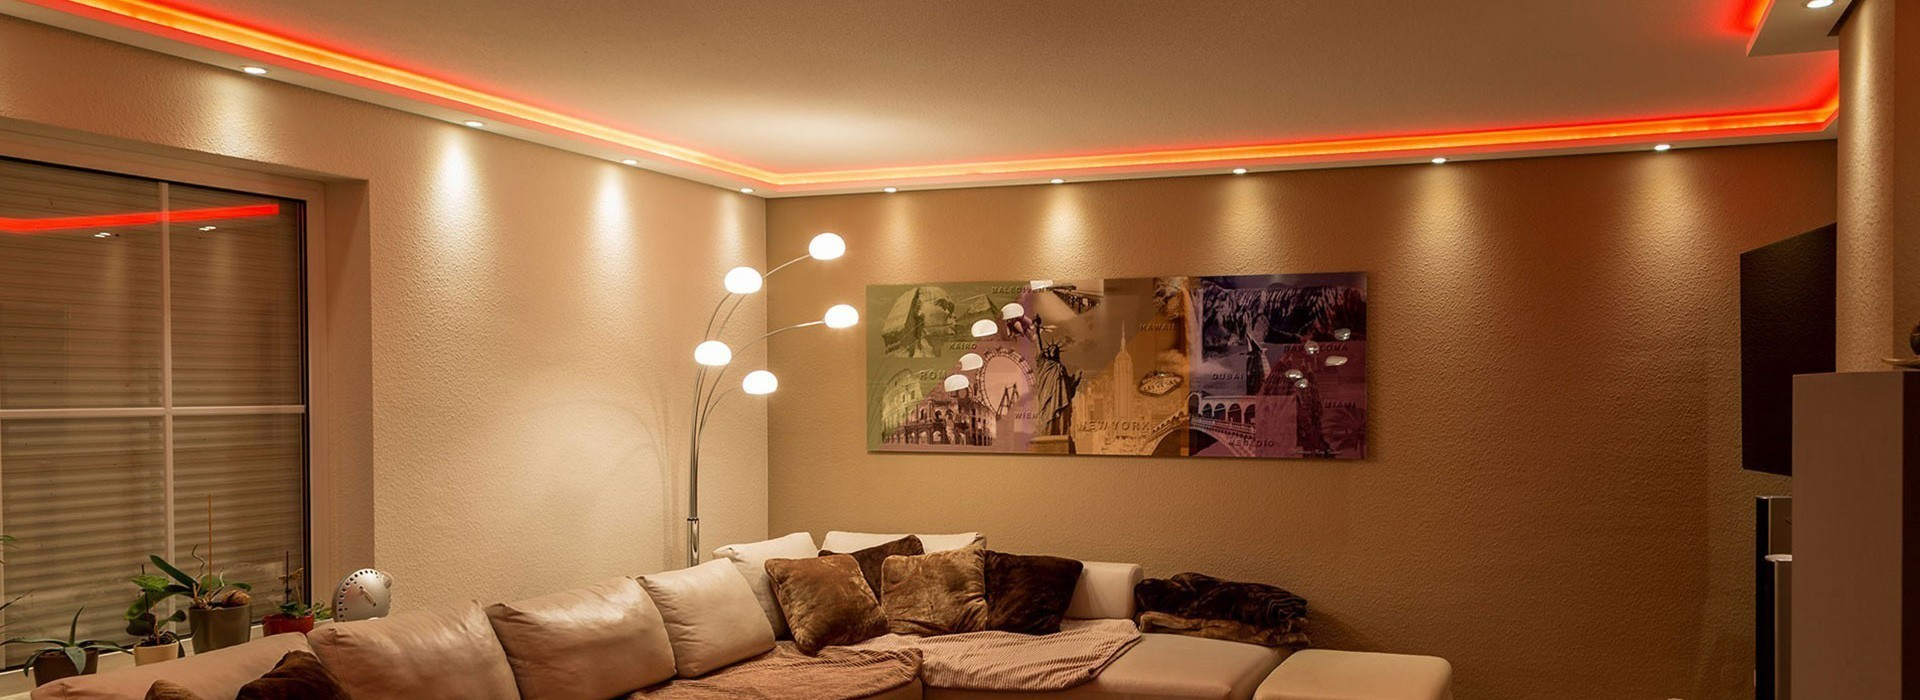 Full Size of Led Beleuchtung Wohnzimmer Indirekt Led Beleuchtung Wohnzimmer Farbwechsel Led Beleuchtung Wohnzimmerschrank Led Beleuchtung Wohnzimmer Selber Bauen Wohnzimmer Led Beleuchtung Wohnzimmer